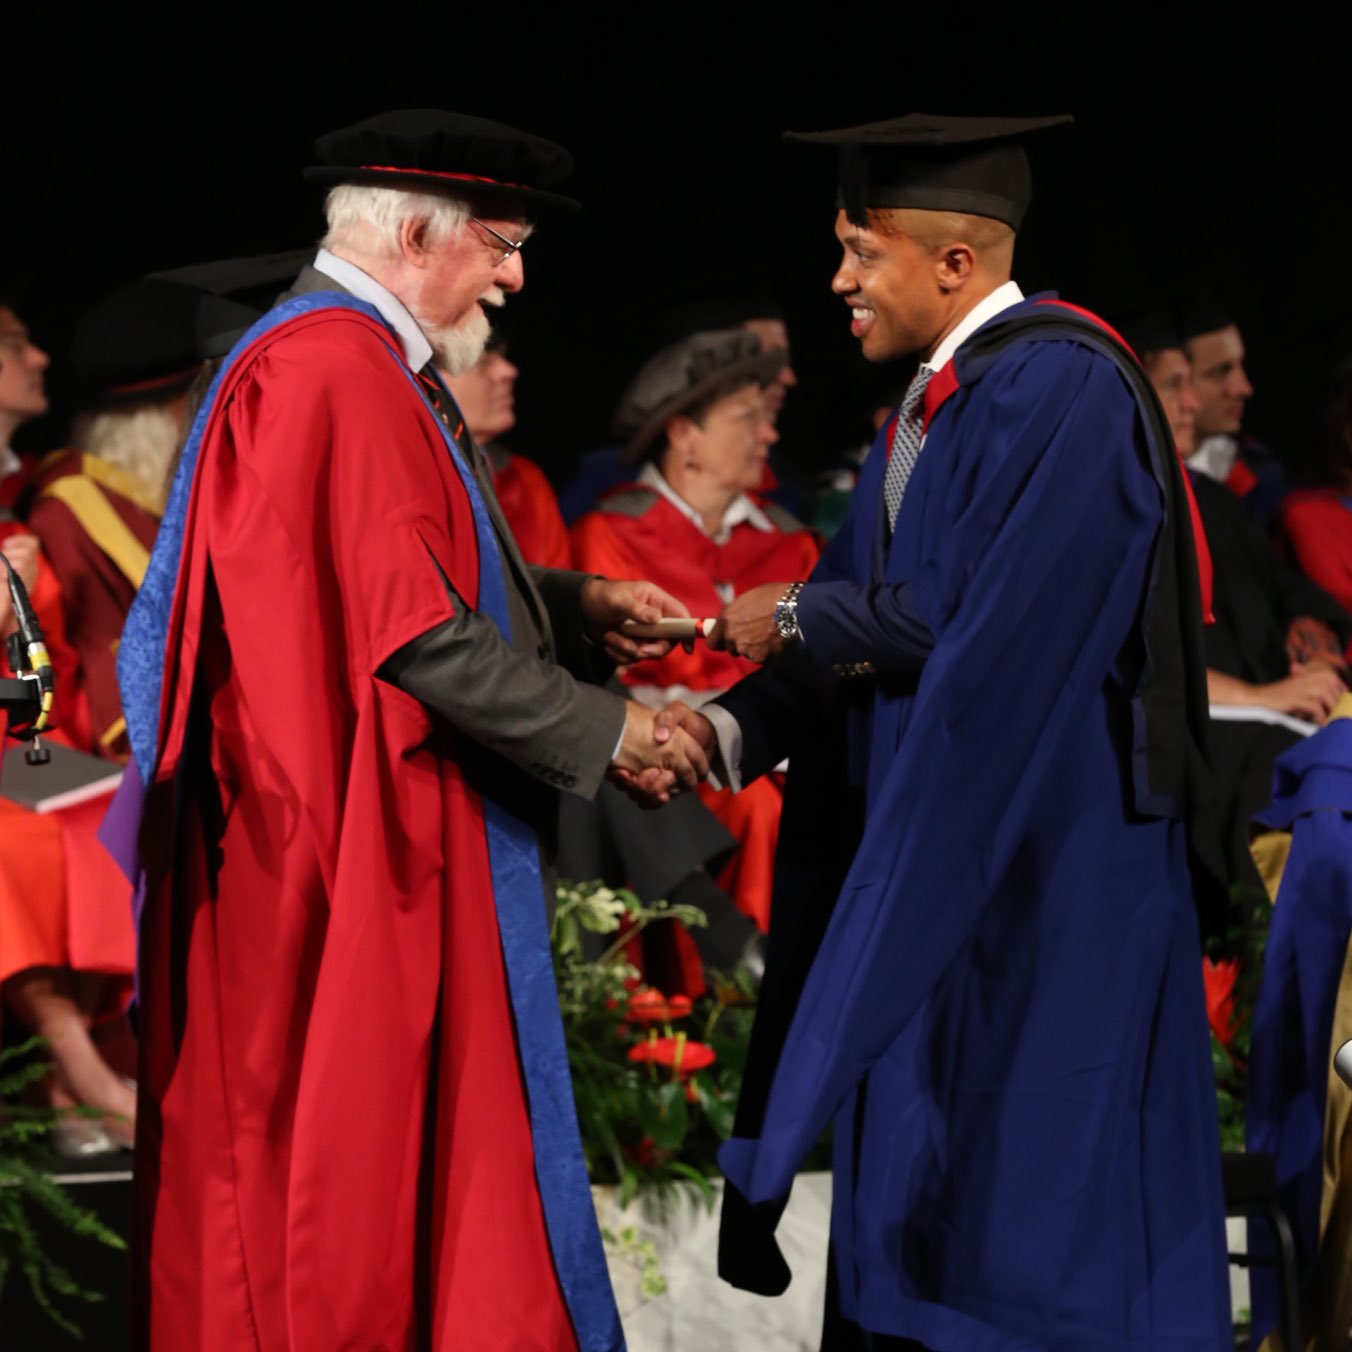 Image of Liverpool Street based personal trainer Jason Jackson awarded Master of Science